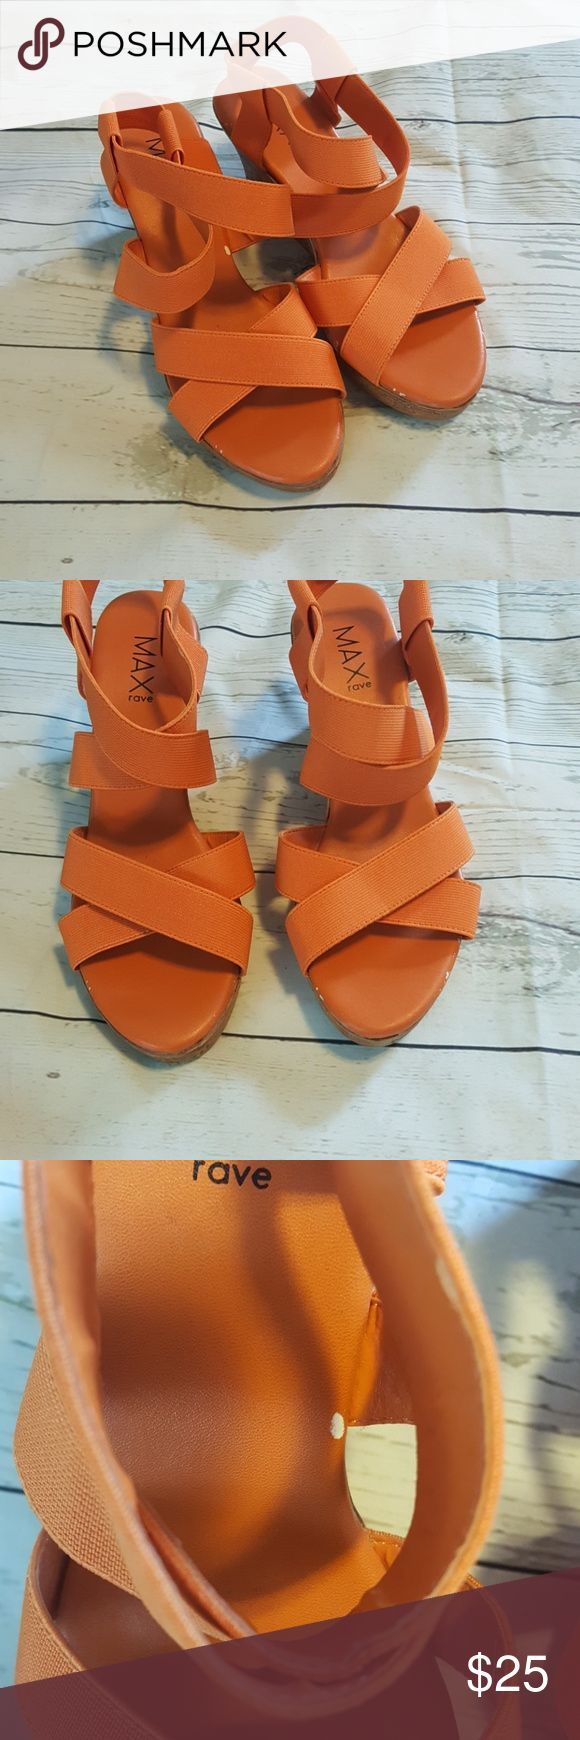 Max Rave Orange Wedges 7 Max Rave Orange Wedges 7  Minor wear inside and on bottom  All reasonable offers accepted no trades  1024 sb1 Max Rave Shoes Wedges